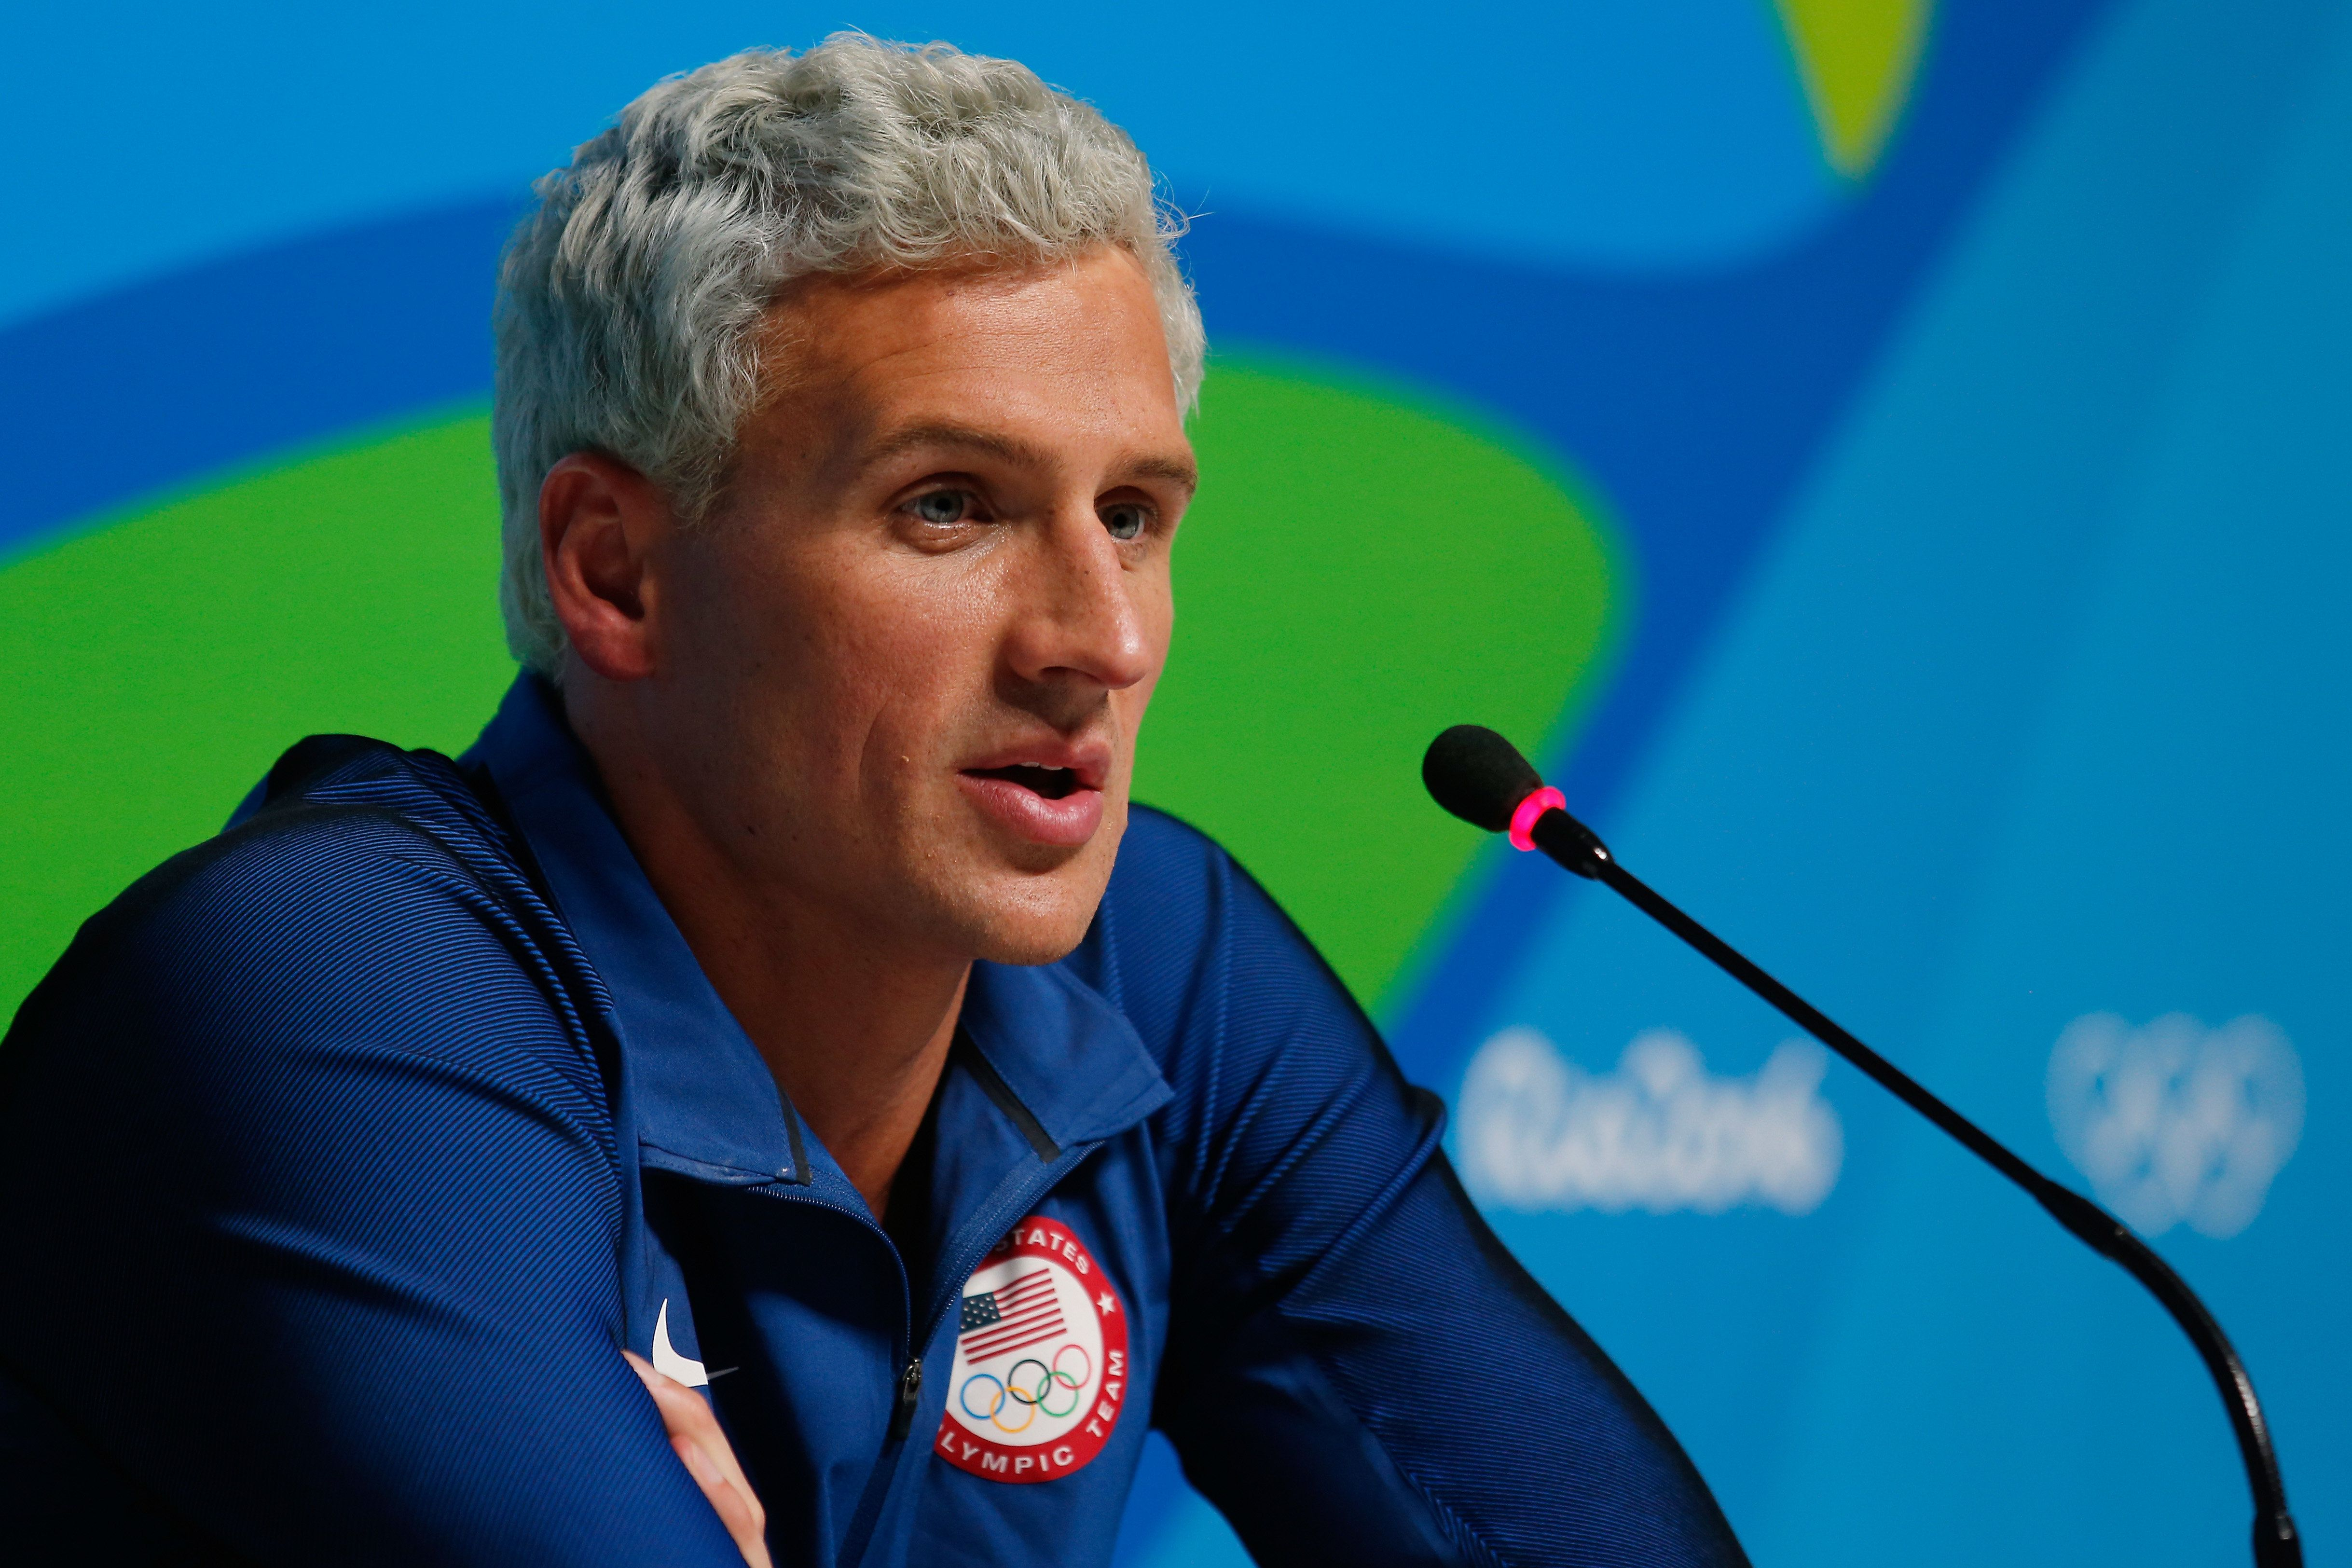 Ryan Lochte of the United States attends a press conference in the Main Press Center on Day 7 of the...